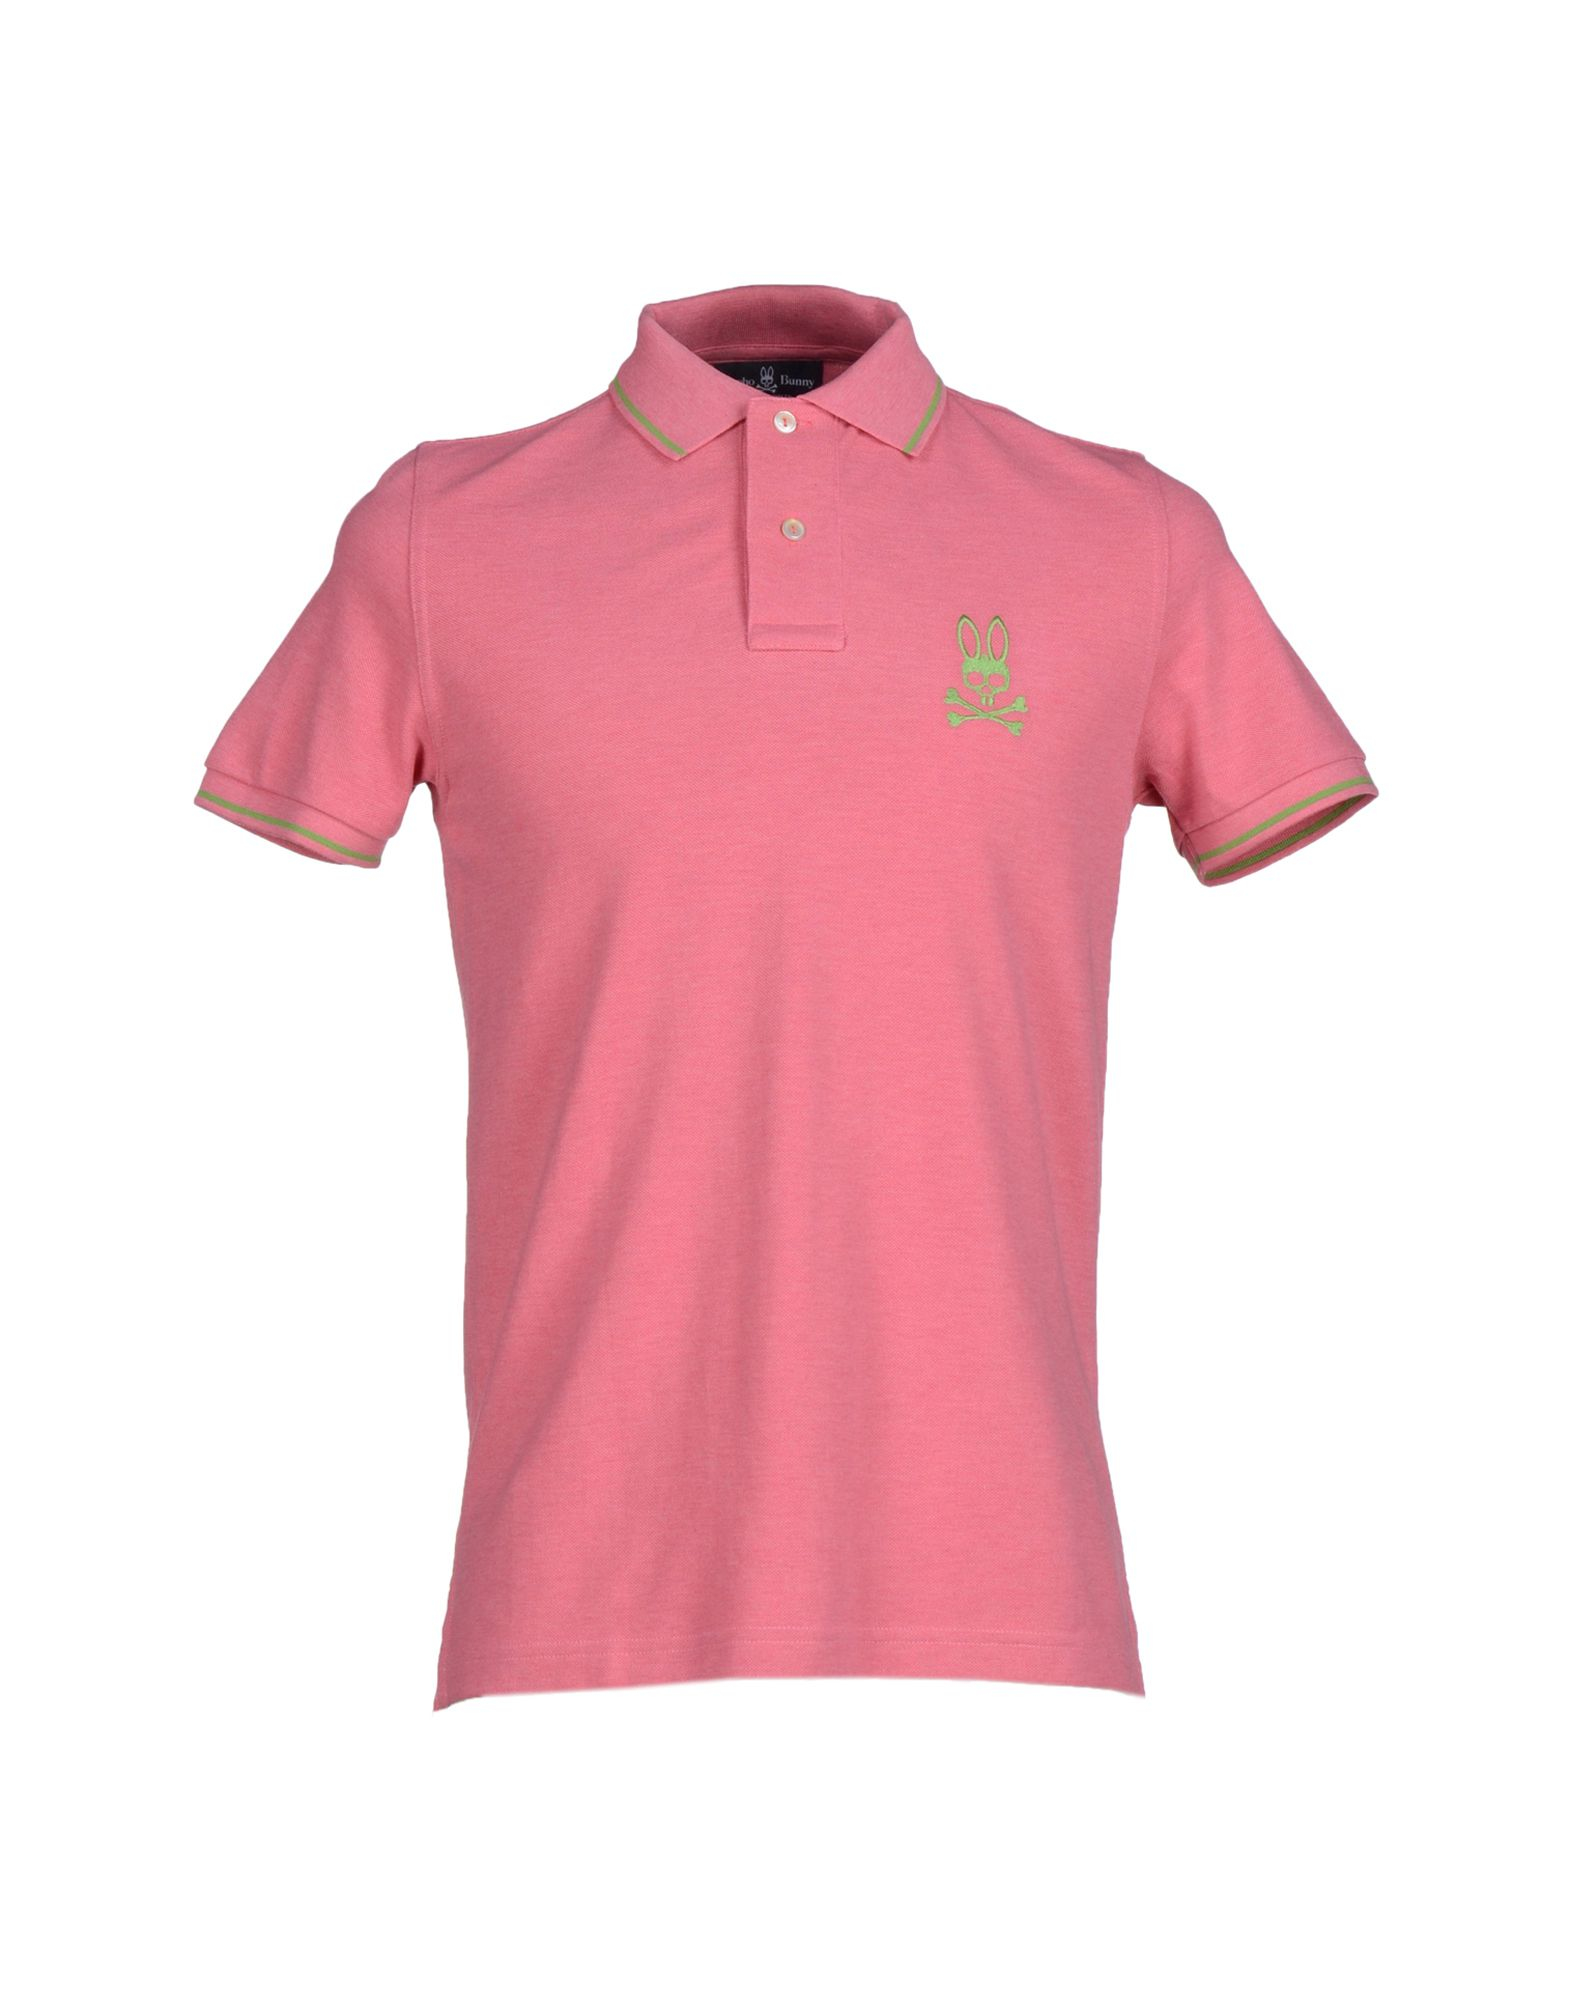 eca821ceb Psycho Bunny Polo Shirt in Pink for Men - Lyst